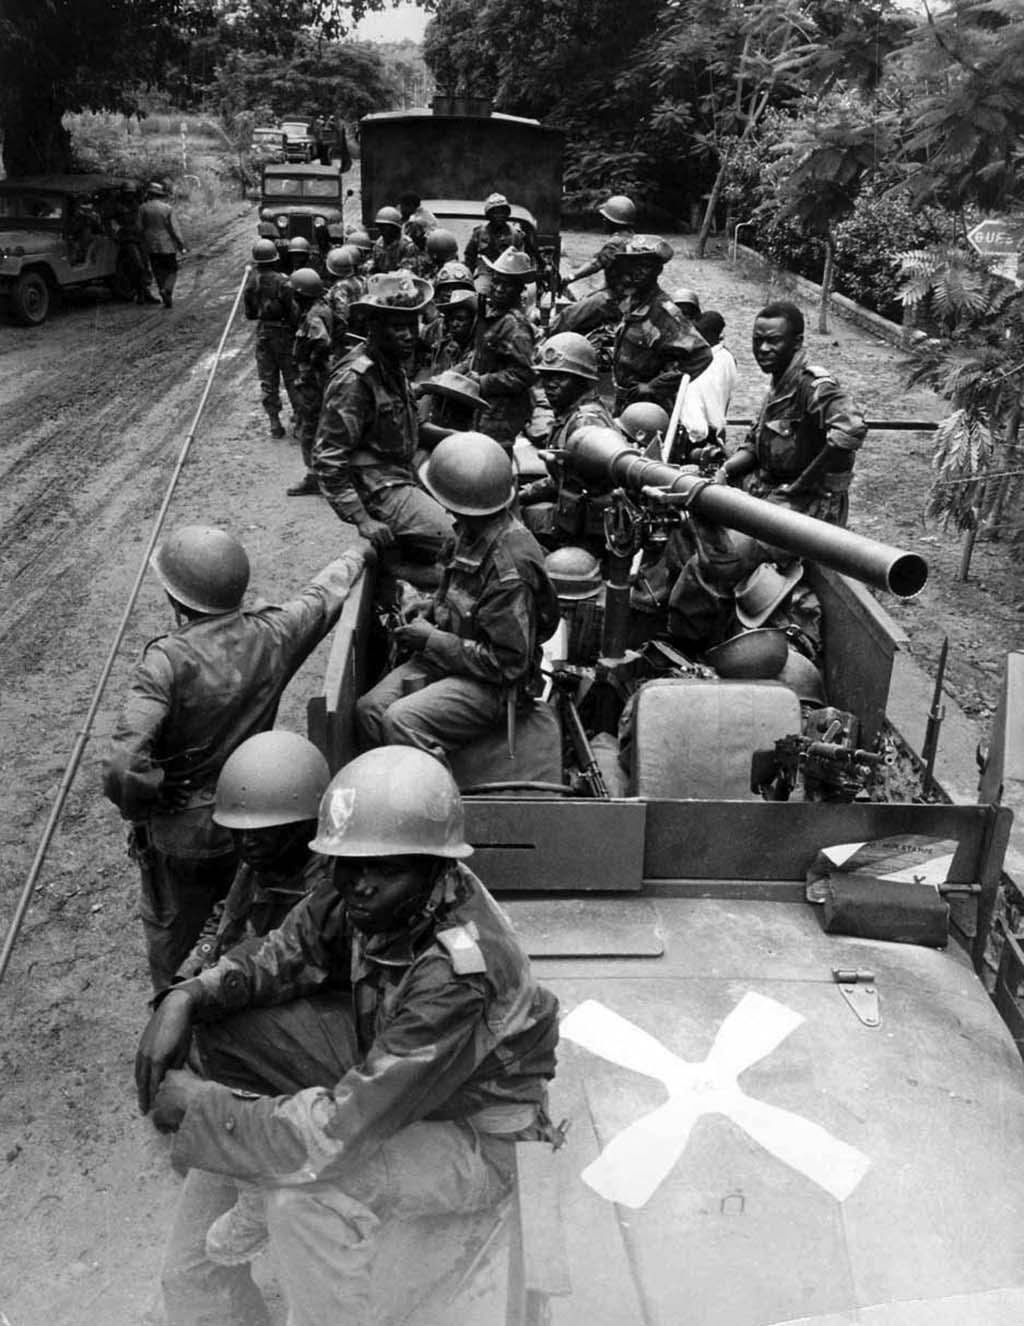 Government Troops in the Congo Civil War